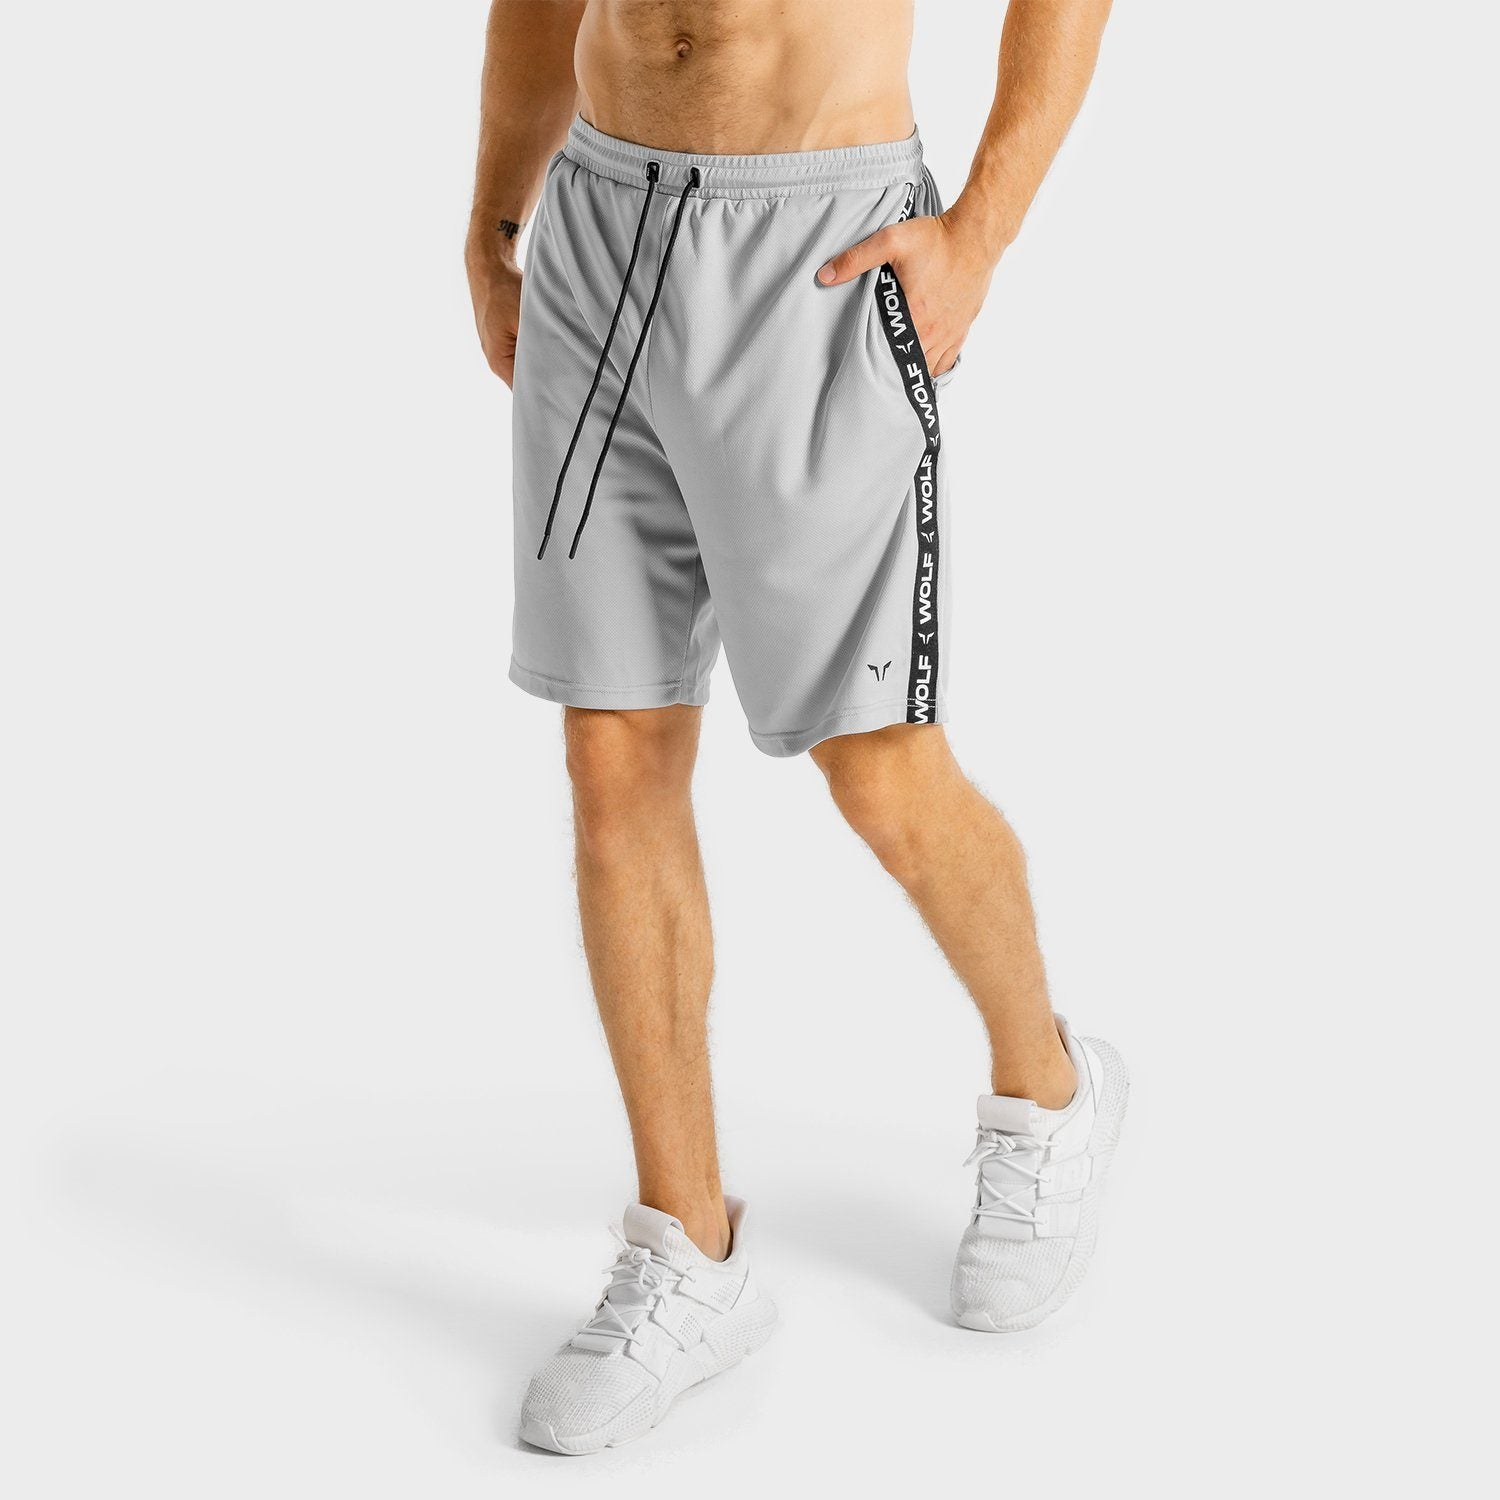 Squat Wolf Core Basketball Shorts - Grey